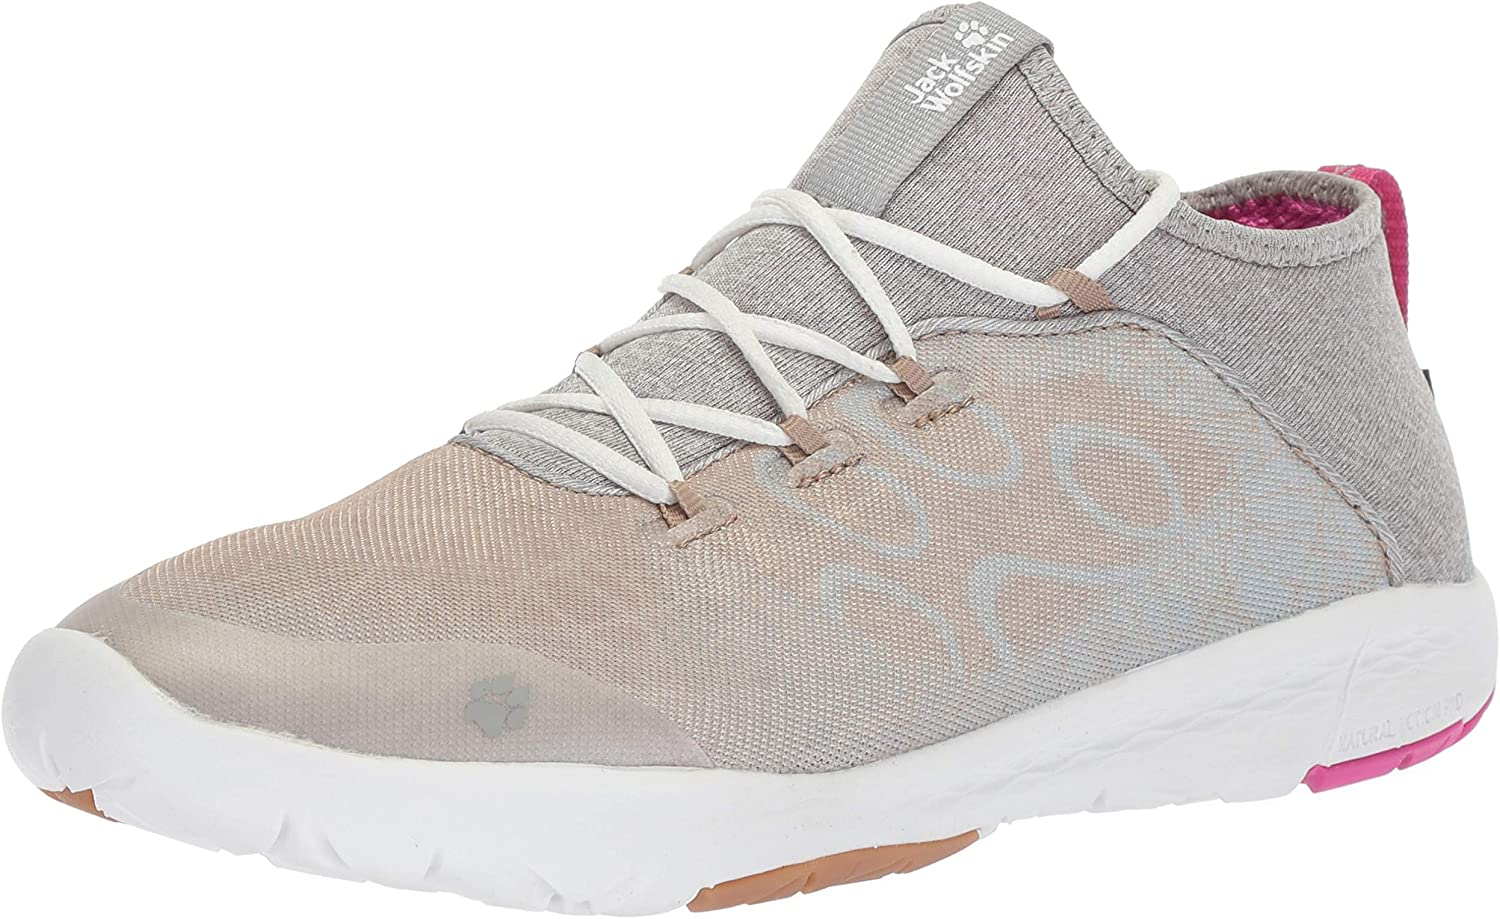 Jack Wolfskin Womens Gravity Flex Shield Low Women's Lightweight Water Resistant Casual Comfort shoes Sneaker